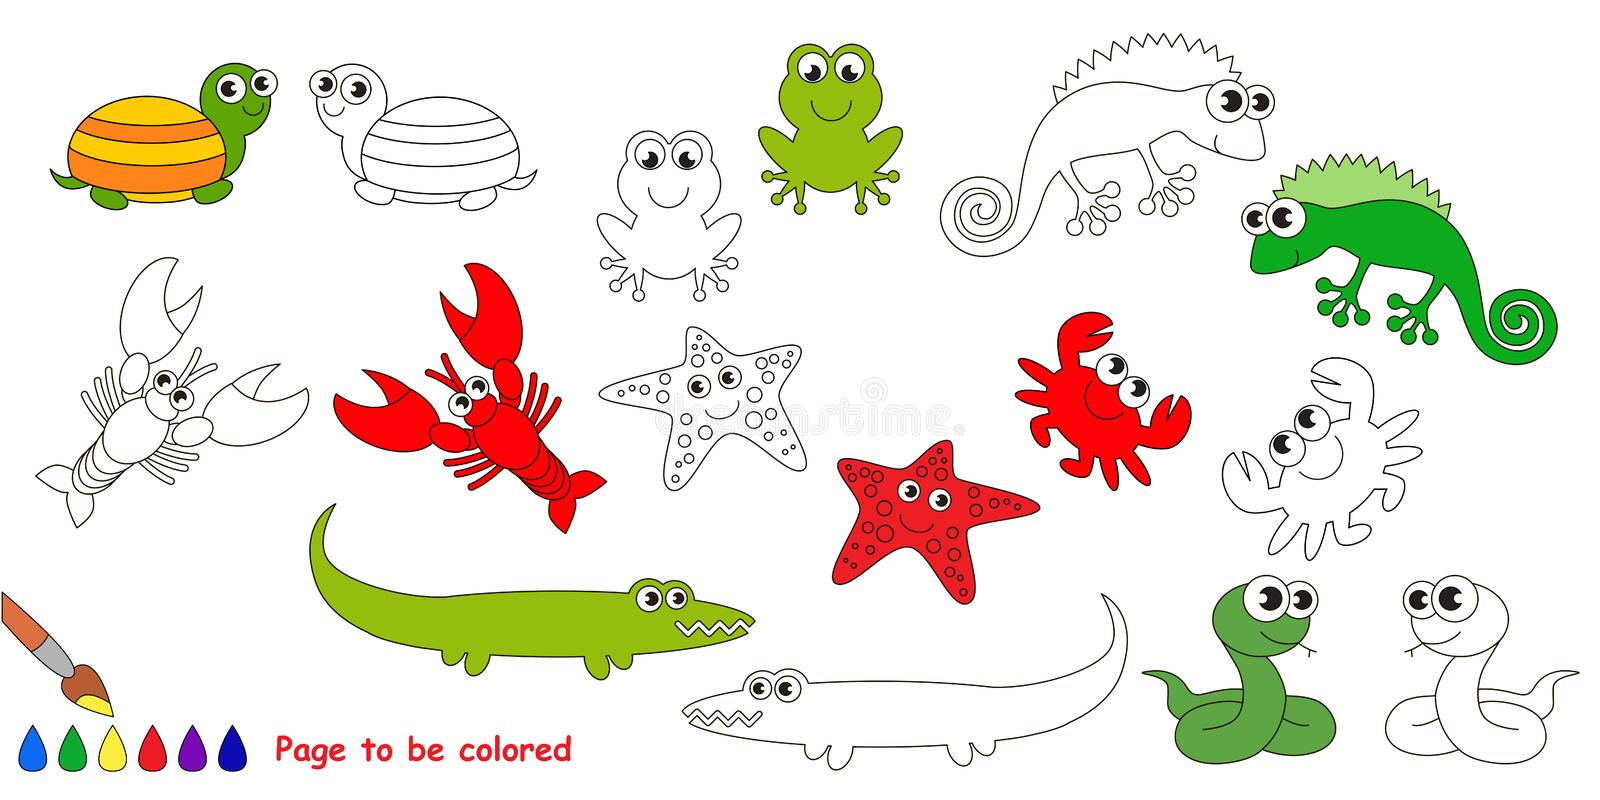 Iguana Cartoon Page To Be Colored Stock Vector